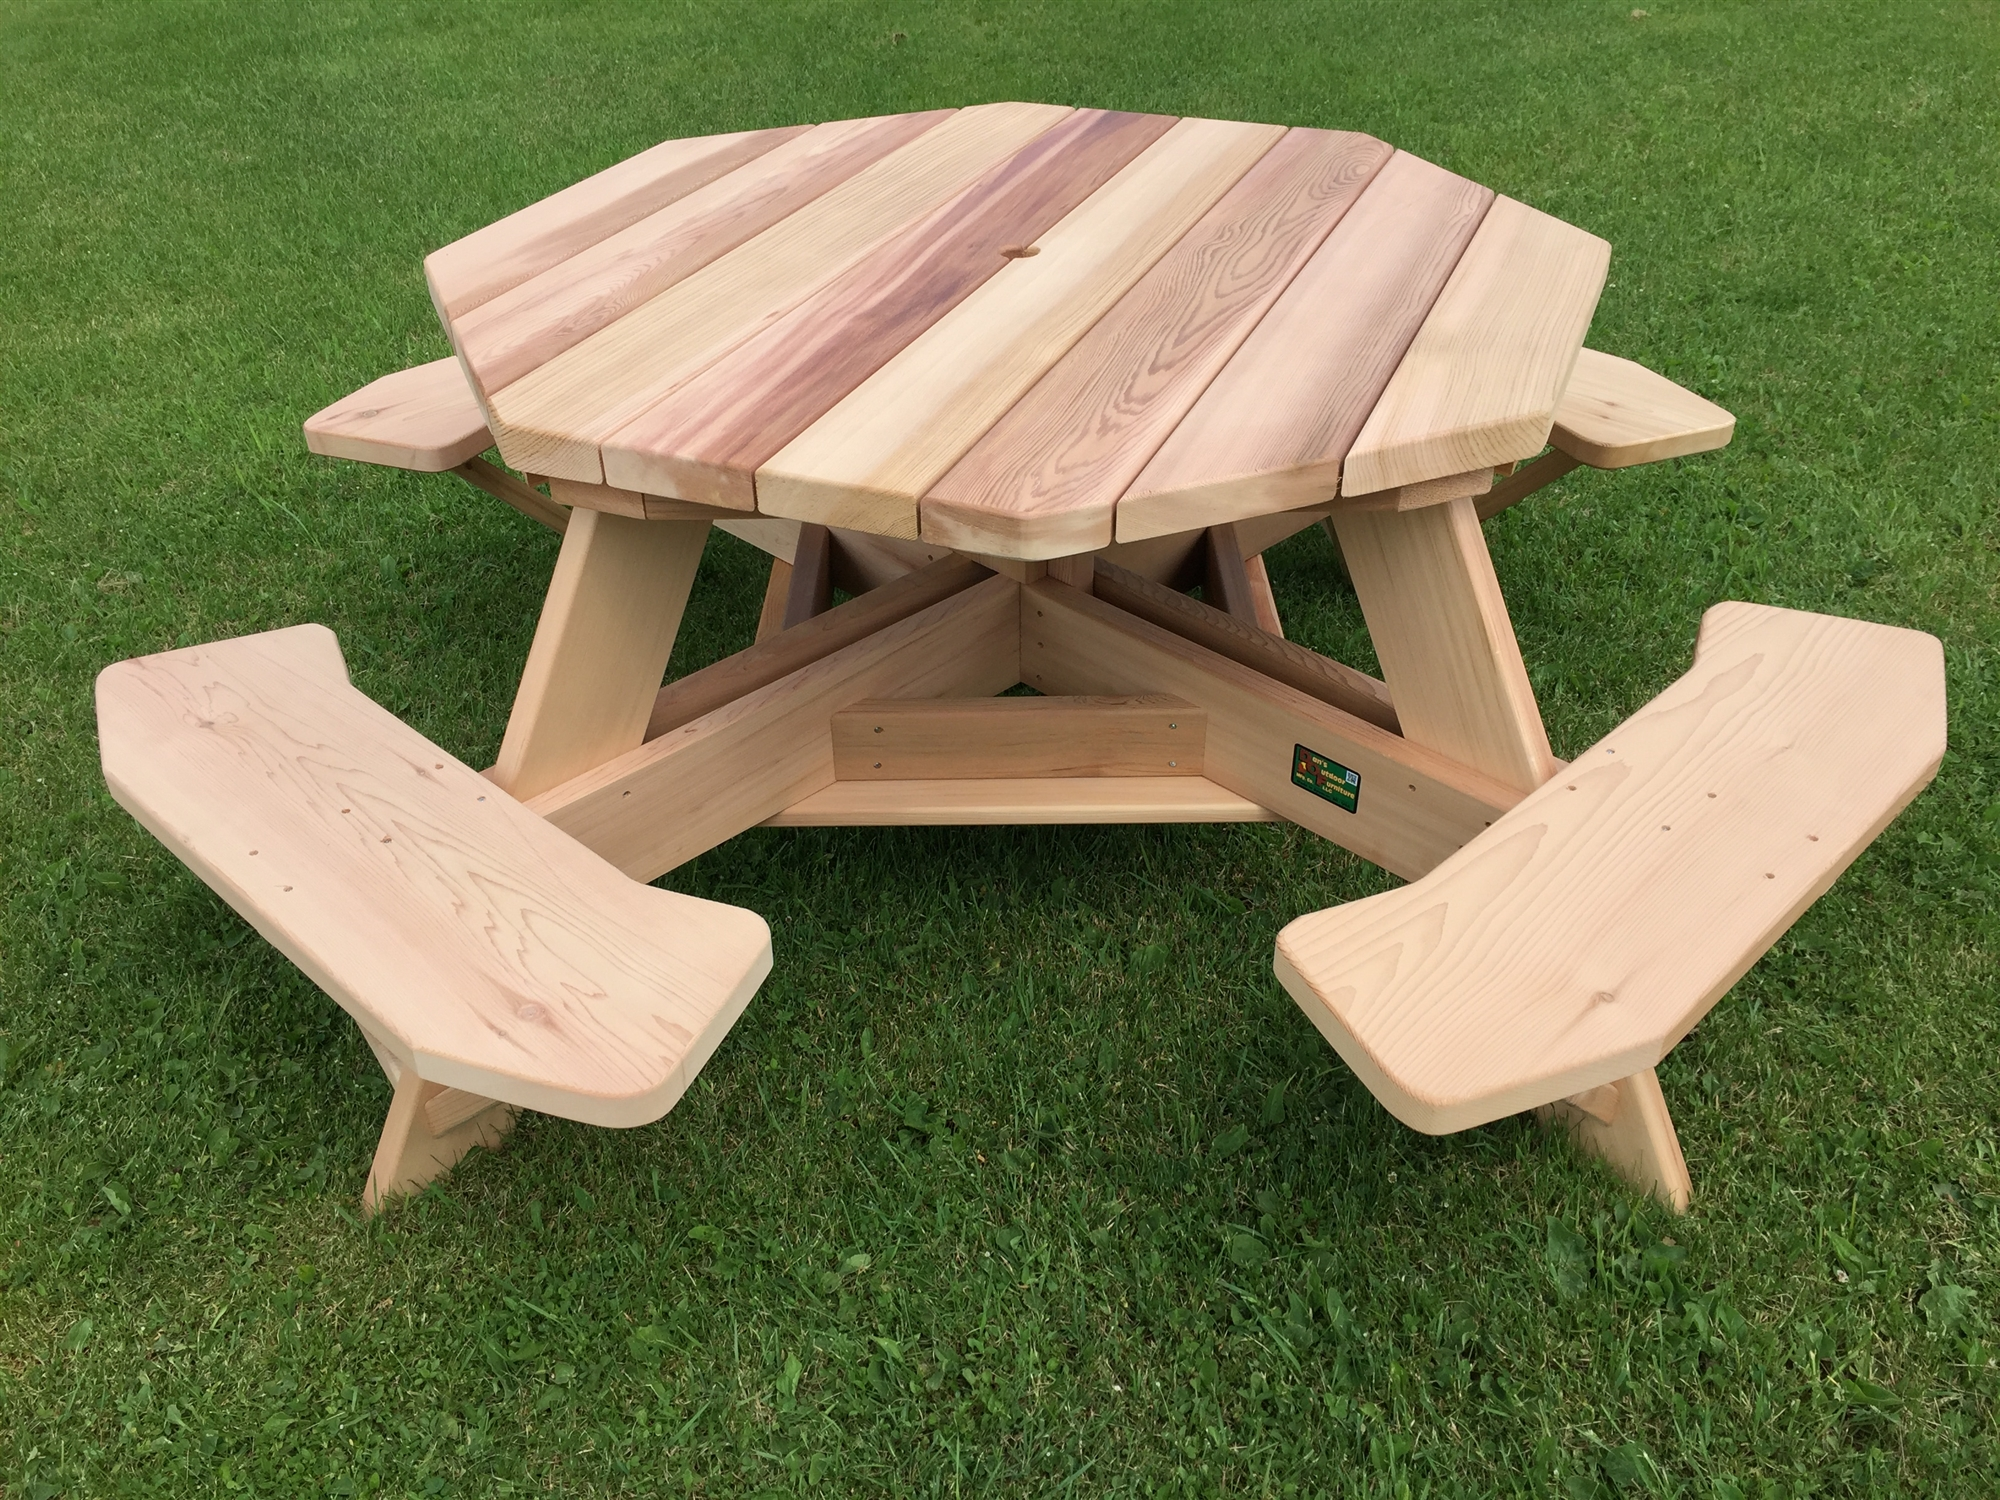 49 Quot Western Red Cedar Octagon Picnic Tables For Backyards